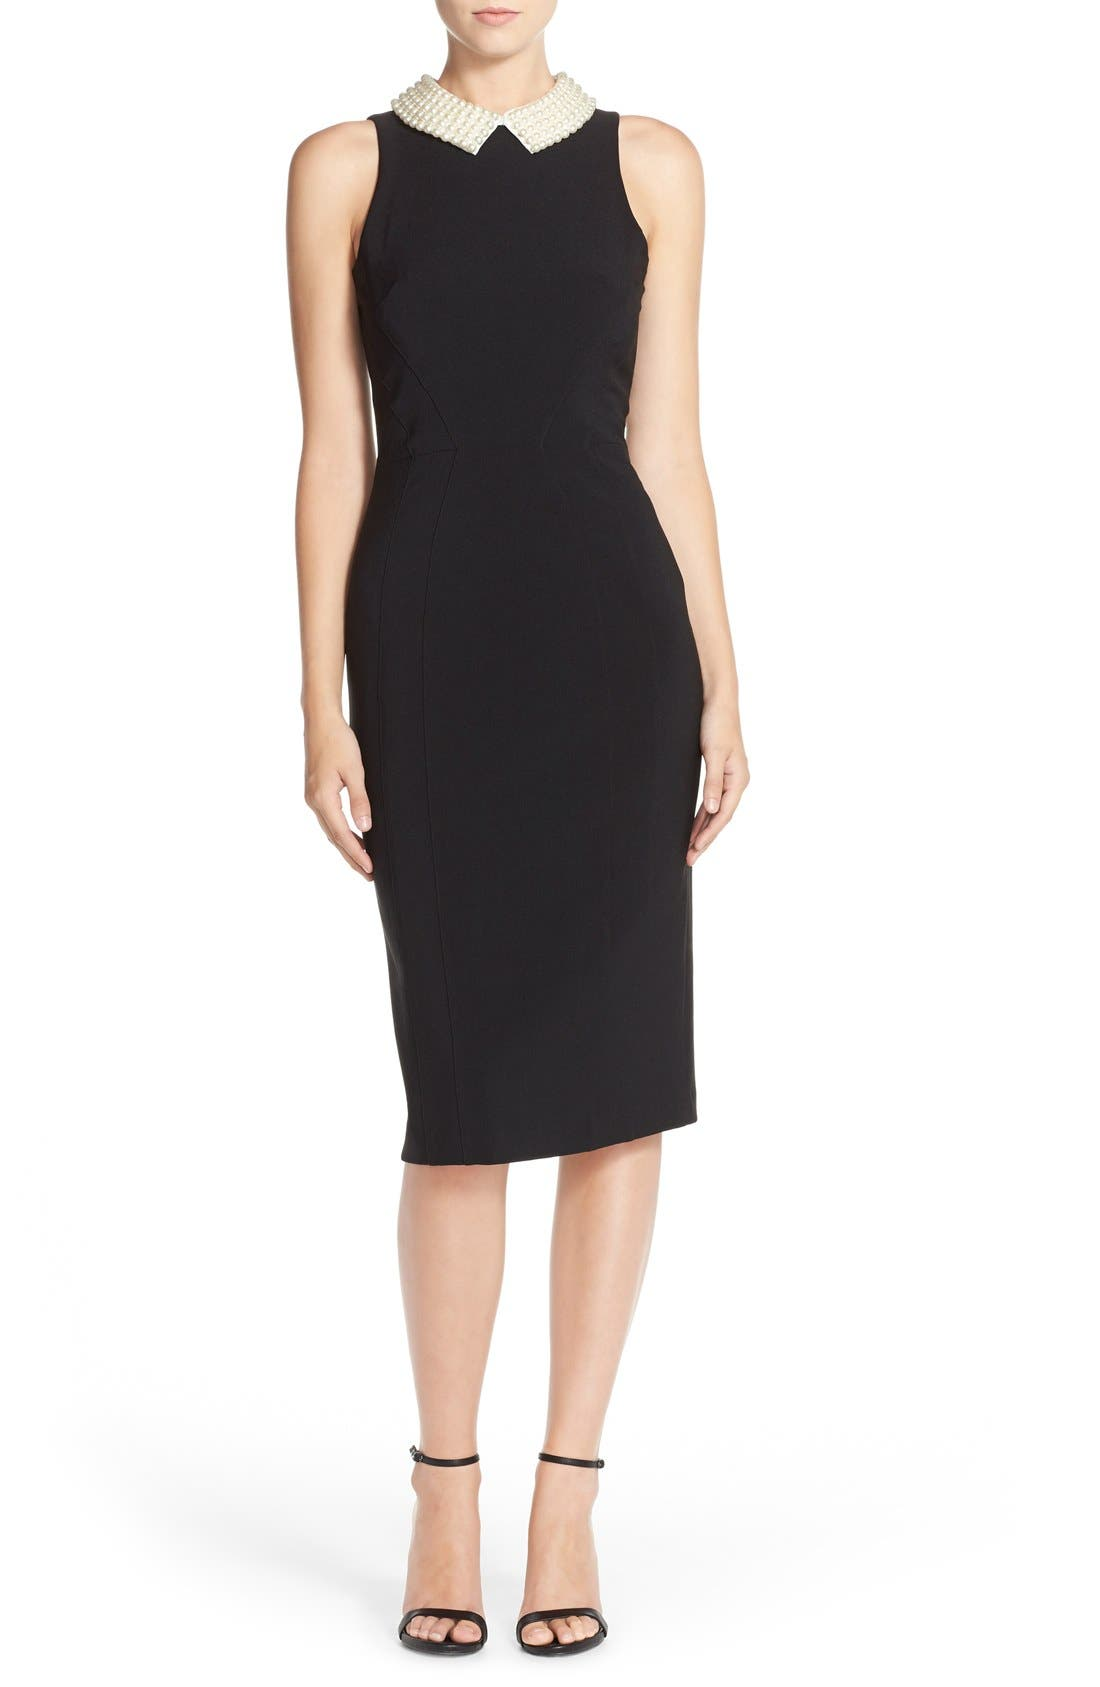 Alternate Image 1 Selected - Maggy London Pearl Collar Crepe Sheath Dress (Petite)